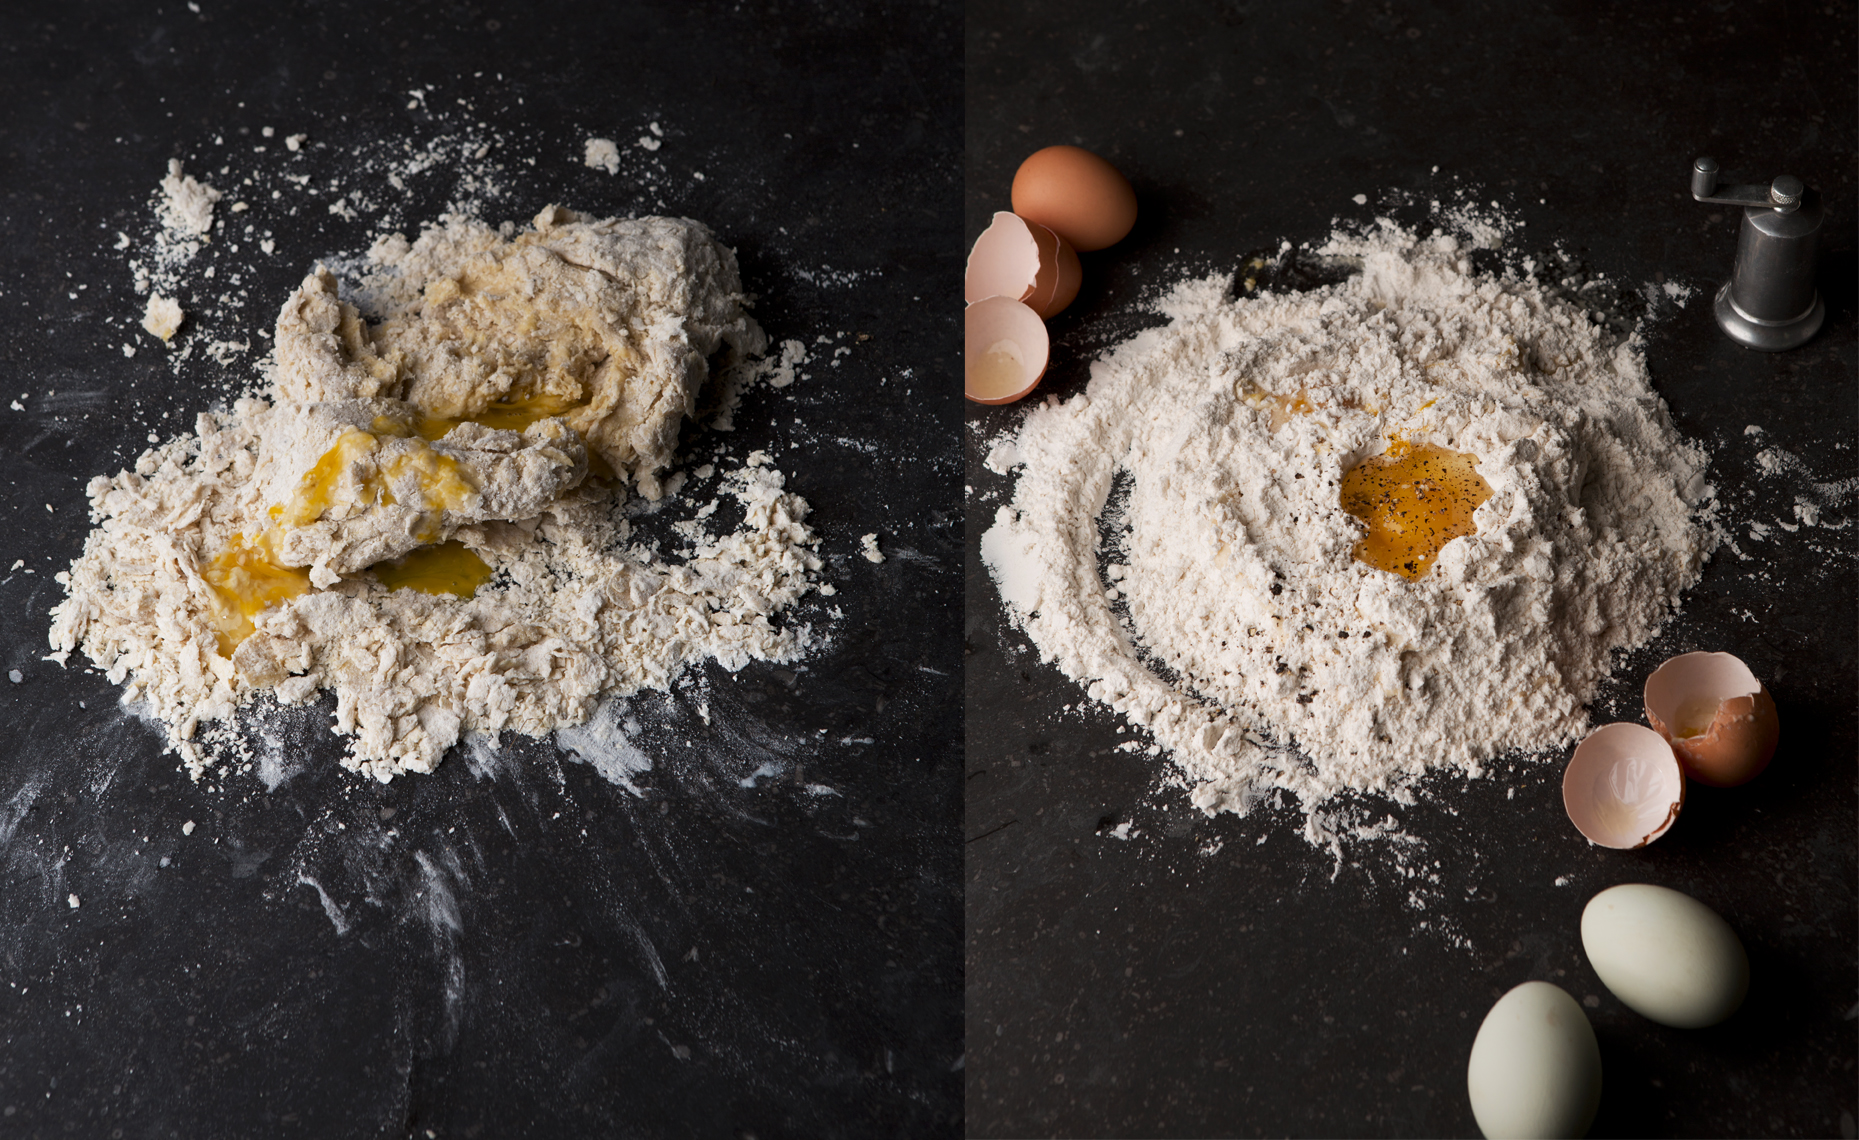 san francisco food  photographer, New York, Flour Egg pasta